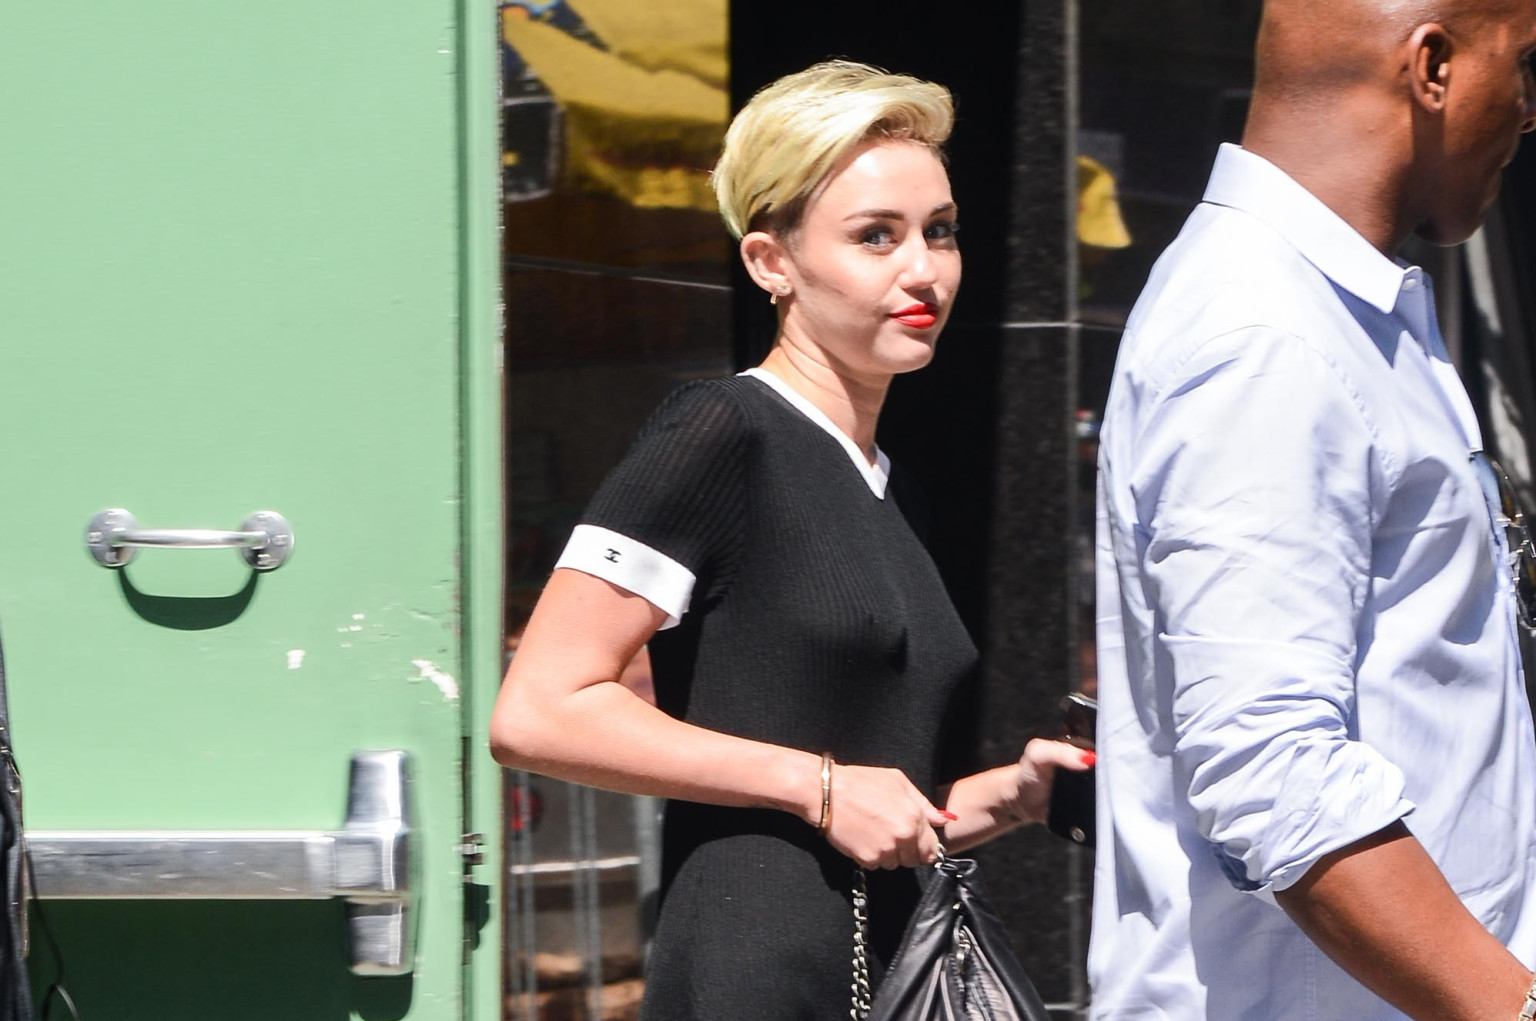 Miley Cyrus' Fitted Chanel Dress Is Surprisingly Classy (PHOTOS, POLL) |  HuffPost